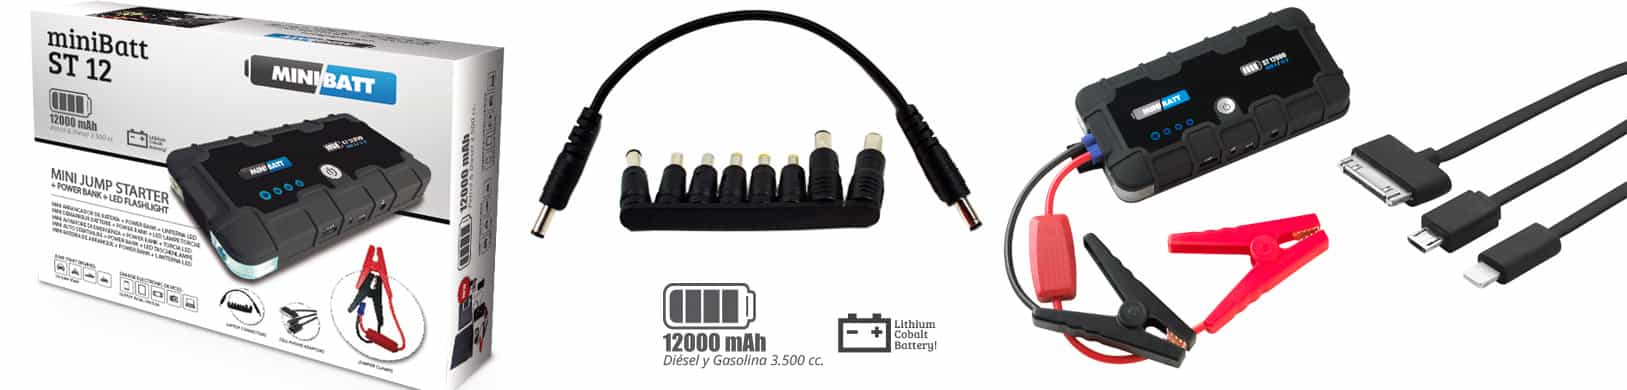 MiniBatt Arracador coches, motos, embarcaciones. Cargador moviles, tables, adroid, apple.